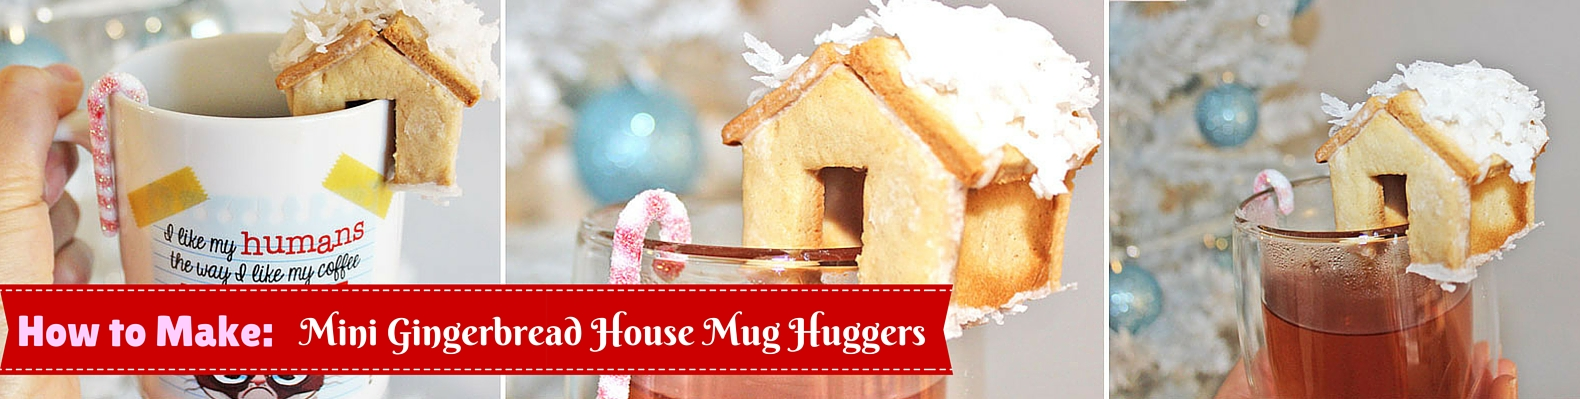 How to make mini gingerbread house mug huggers for christmas how to make mini gingerbread house mug huggers for christmas inhabitat green design innovation architecture green building solutioingenieria Image collections